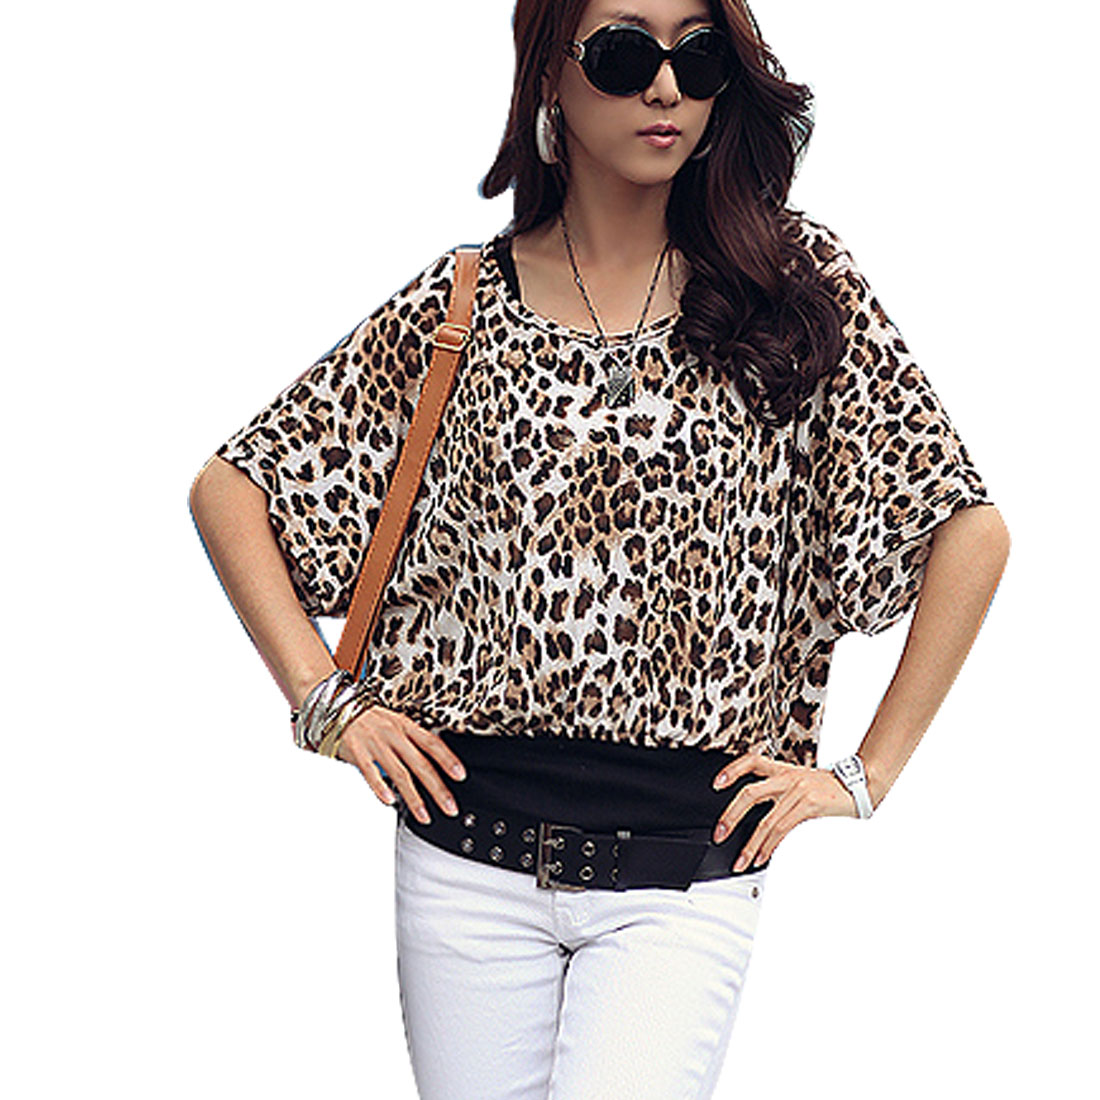 Coffee Color Leopard Print Boat Neck Bat Sleeve Blouse XS for Women